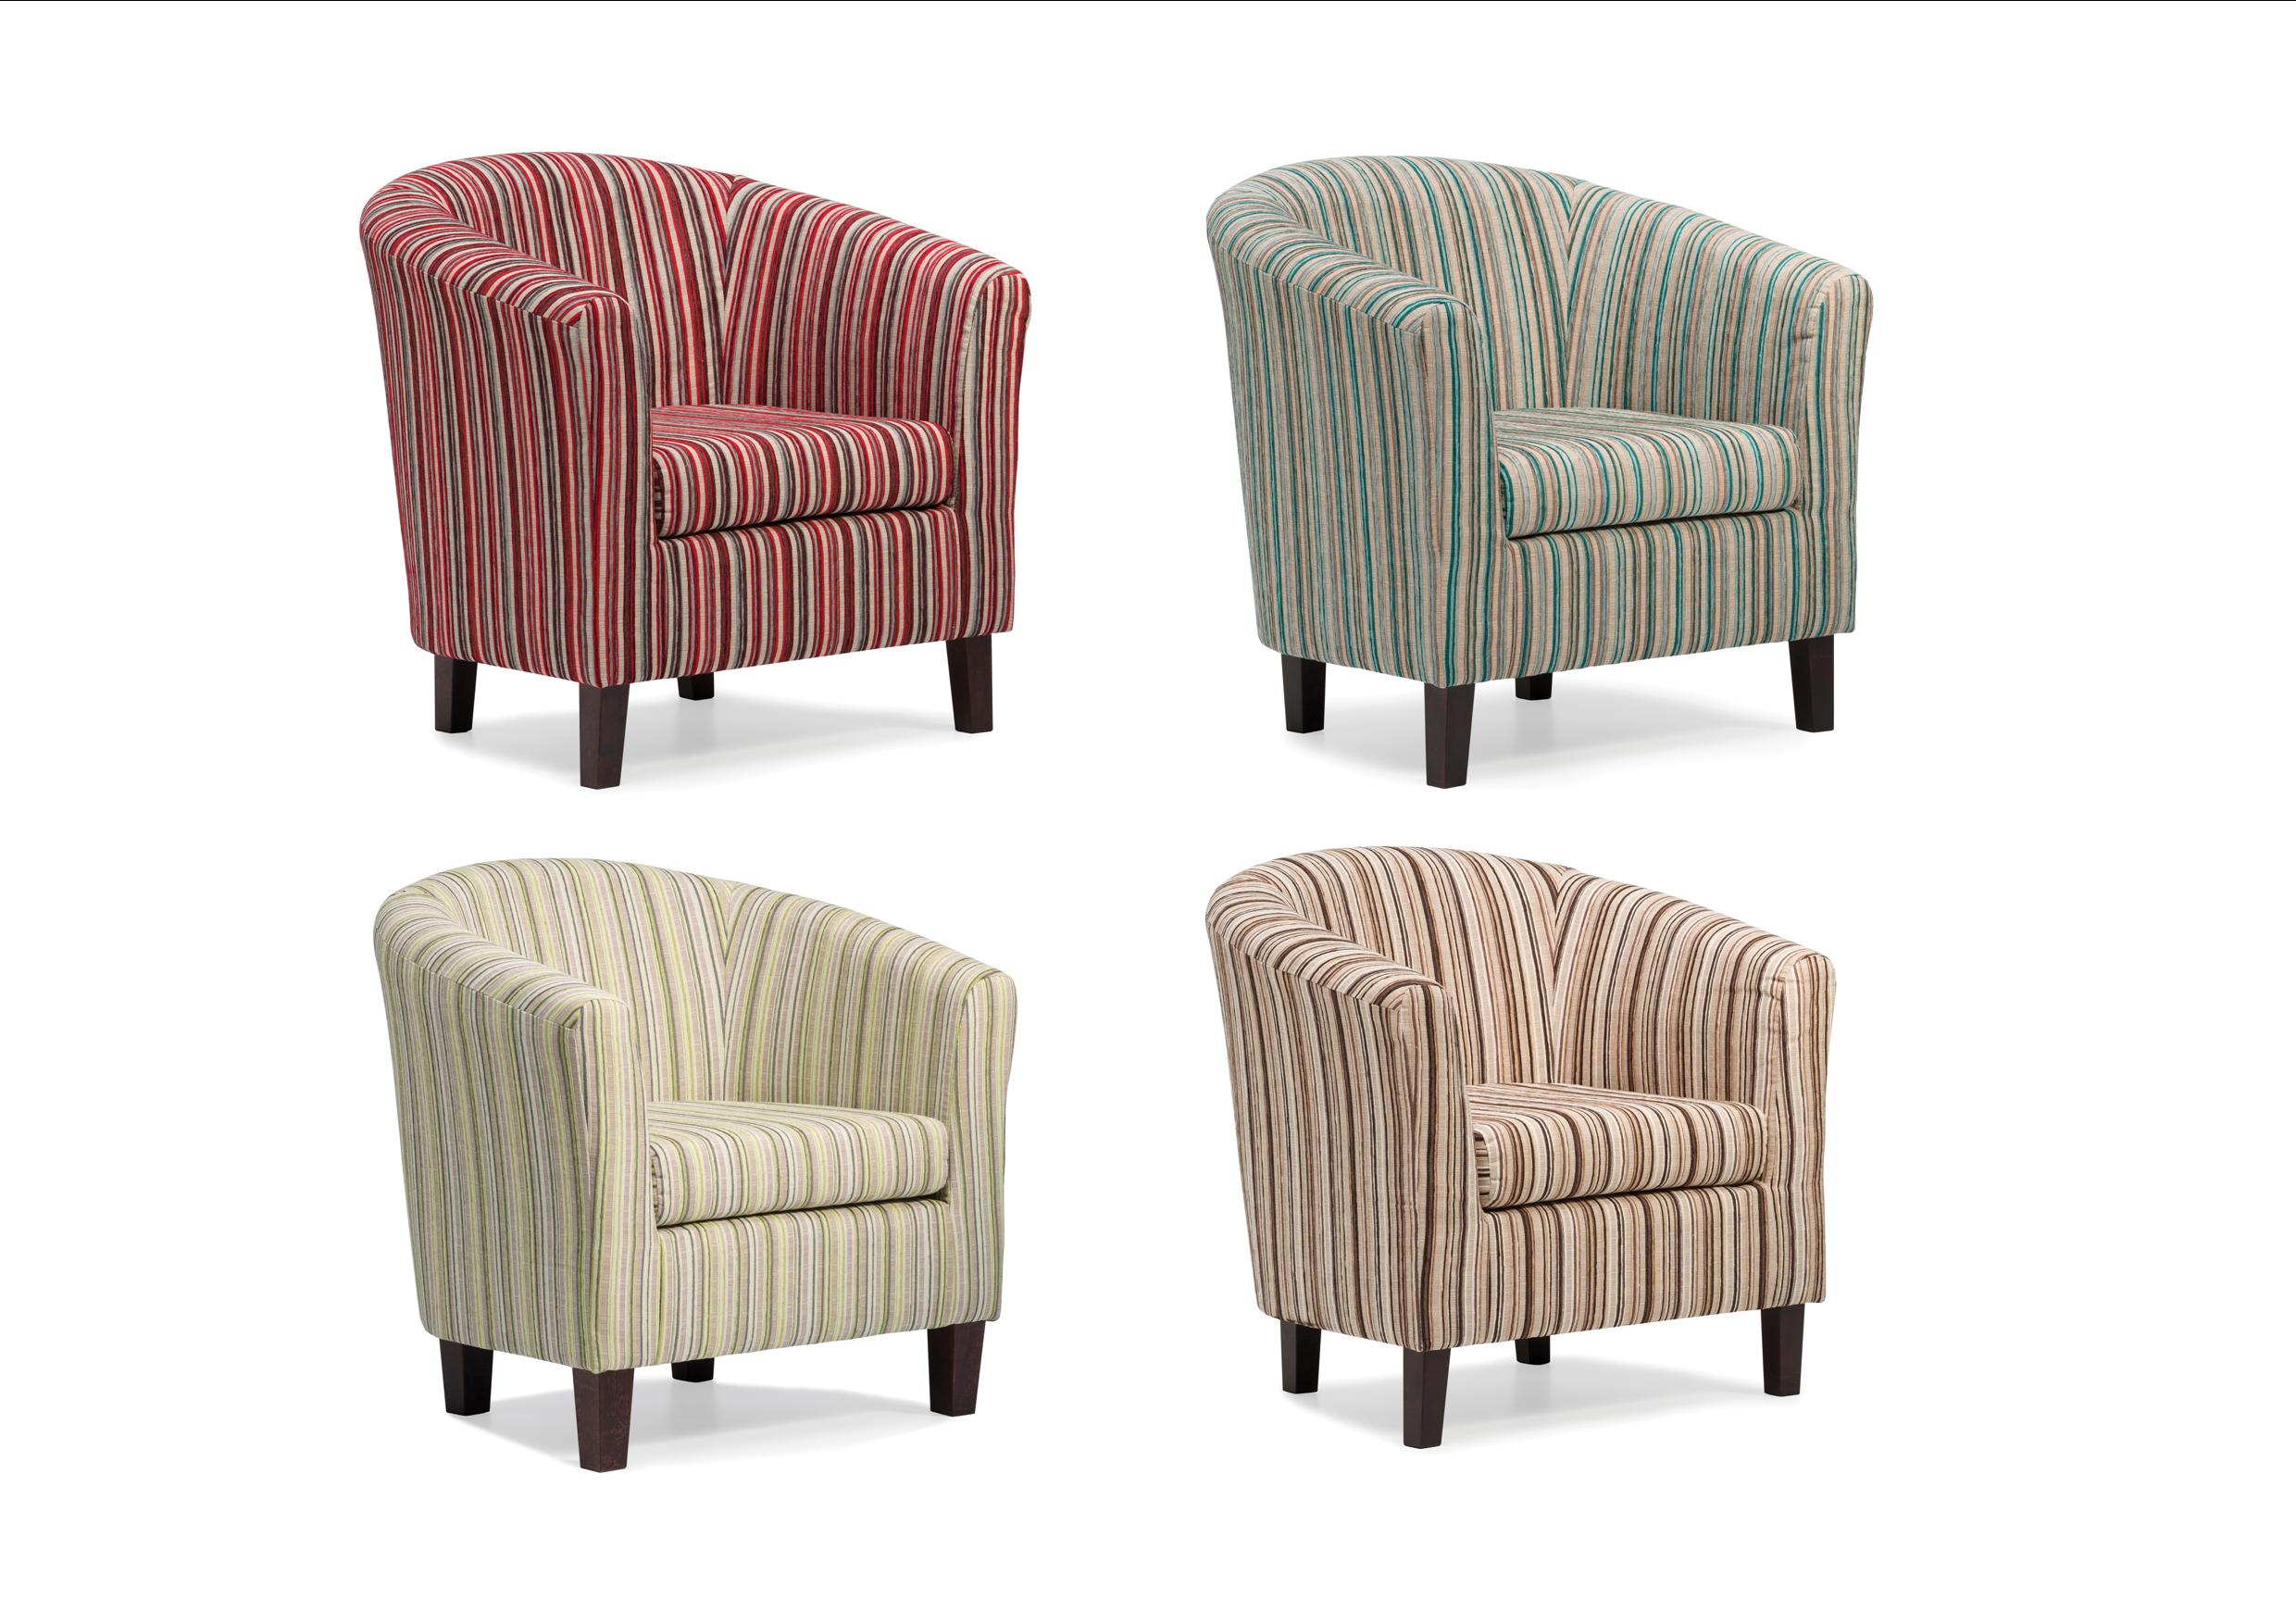 Dorset Stripe Tub Chair - Available in Red, Chocolate, Lime or Teal ...